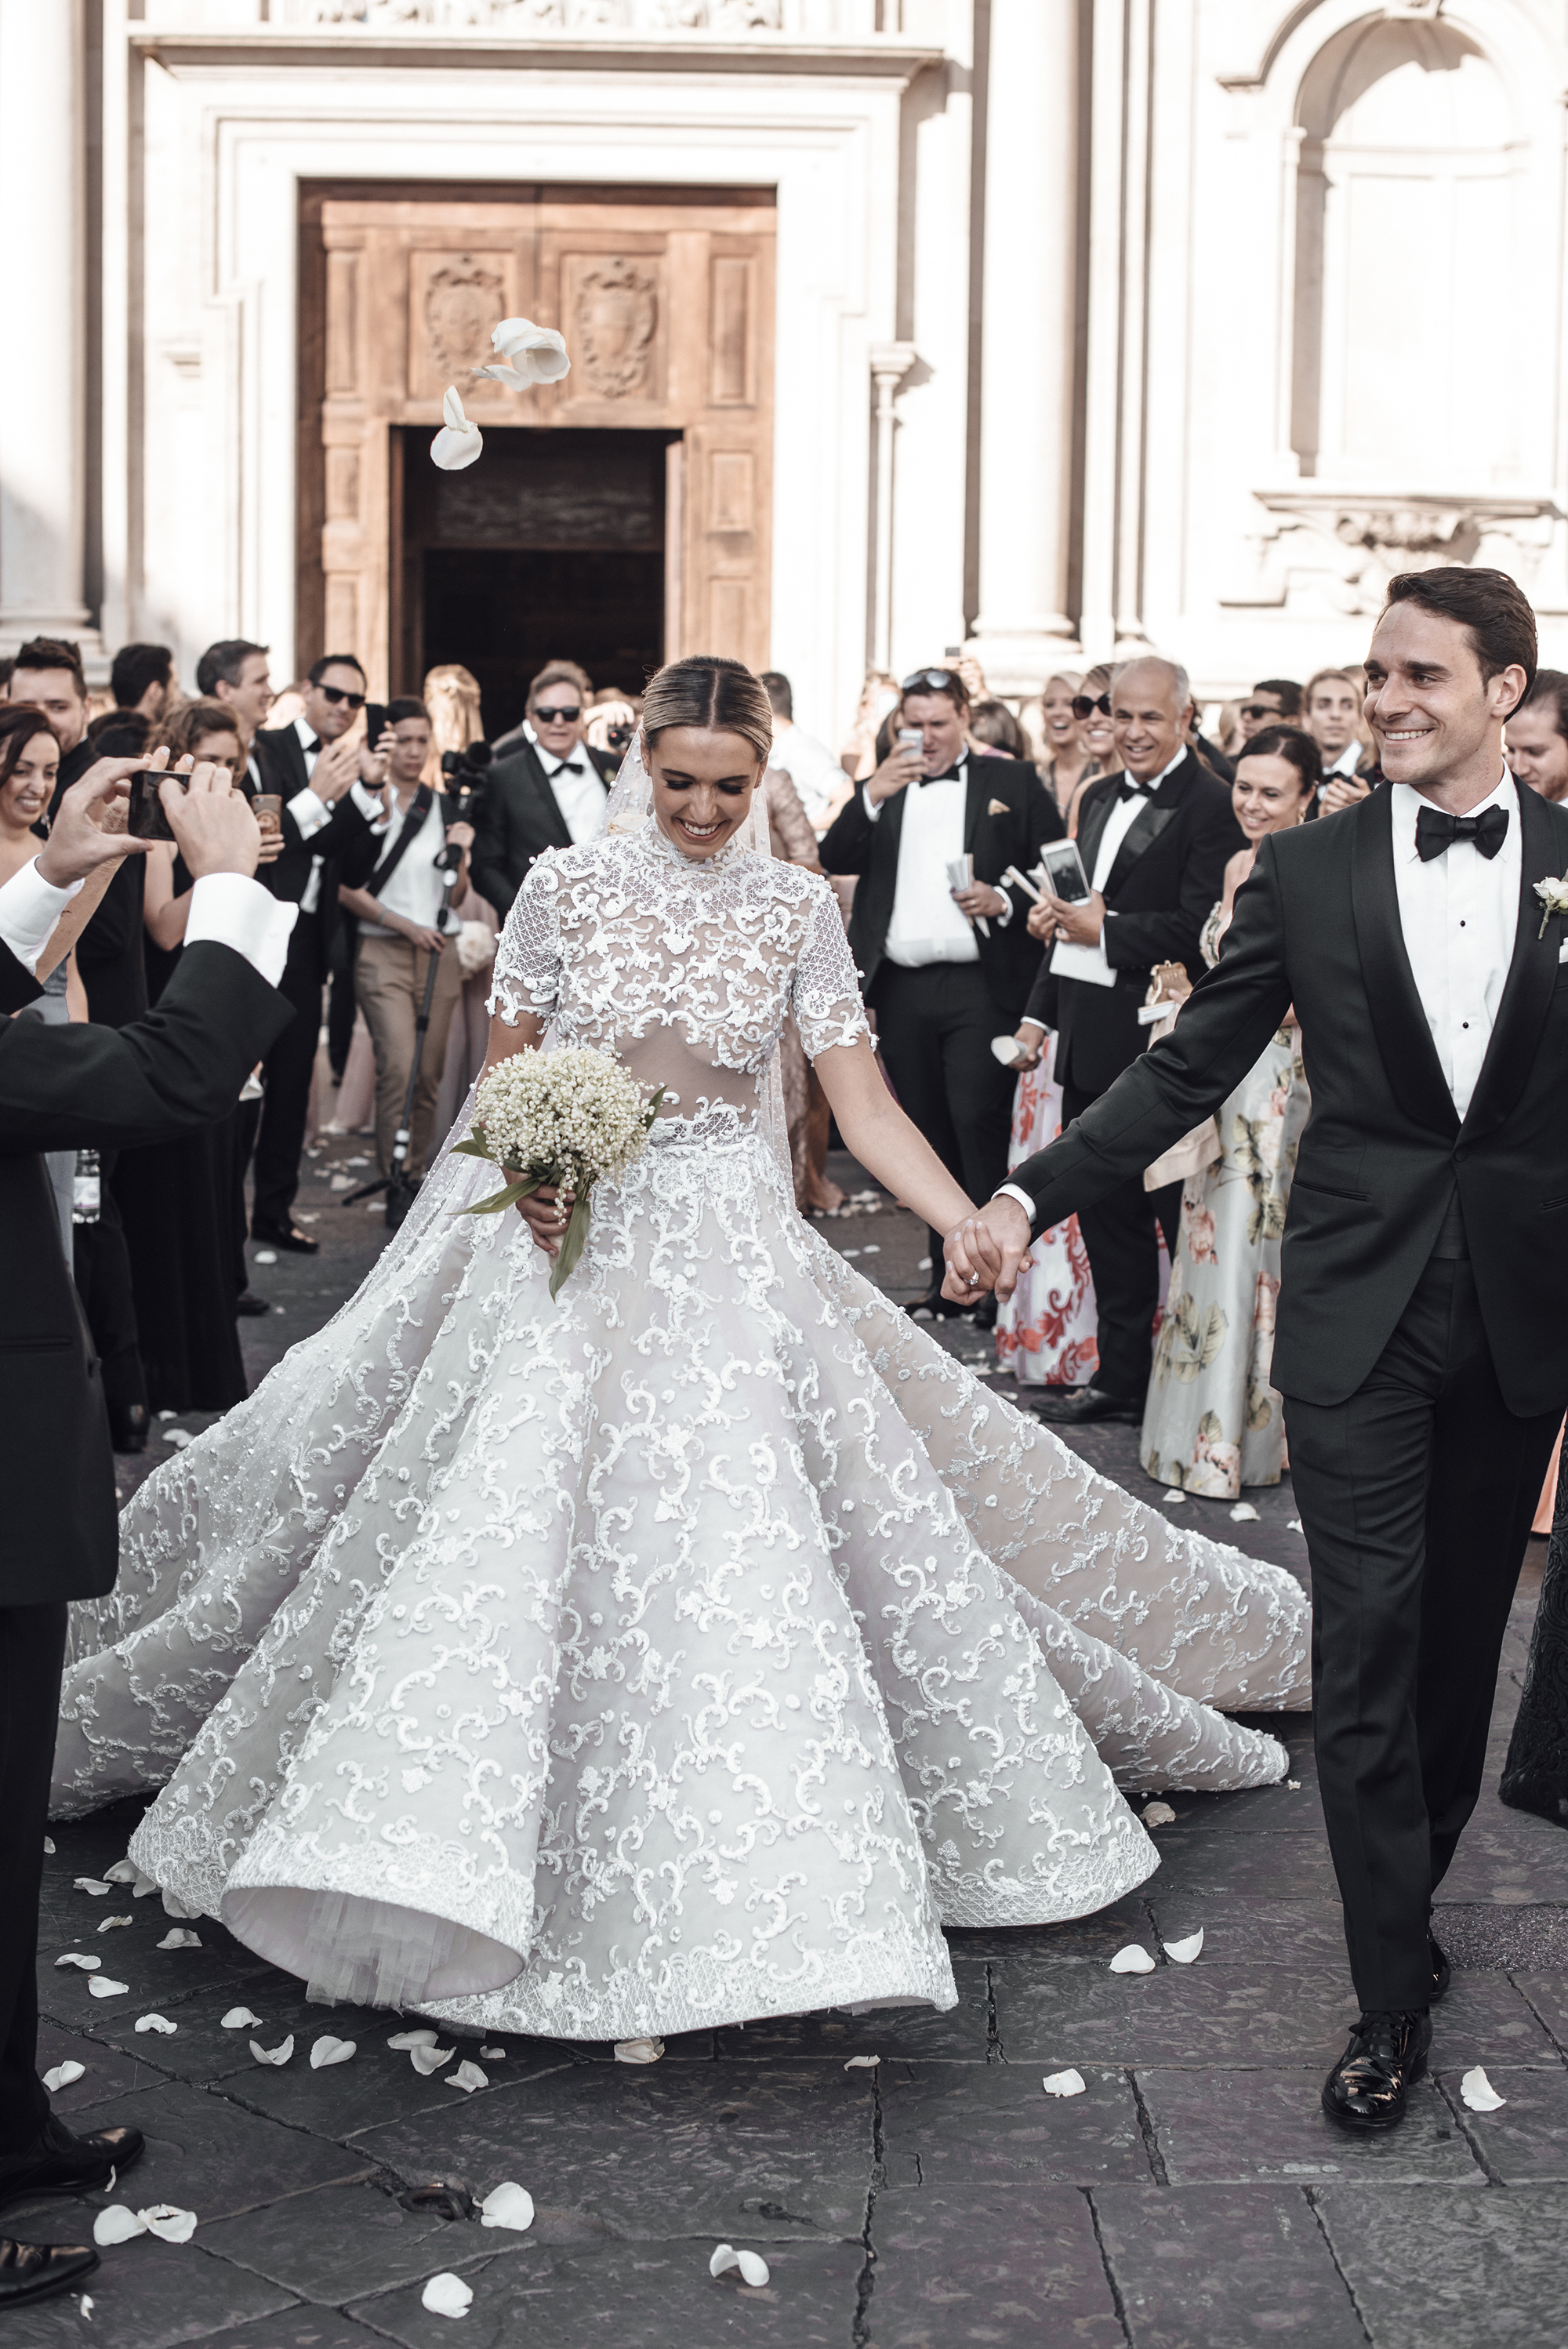 Camila S Bride Diary Our Wedding In Florence Part 2 Camila Carril